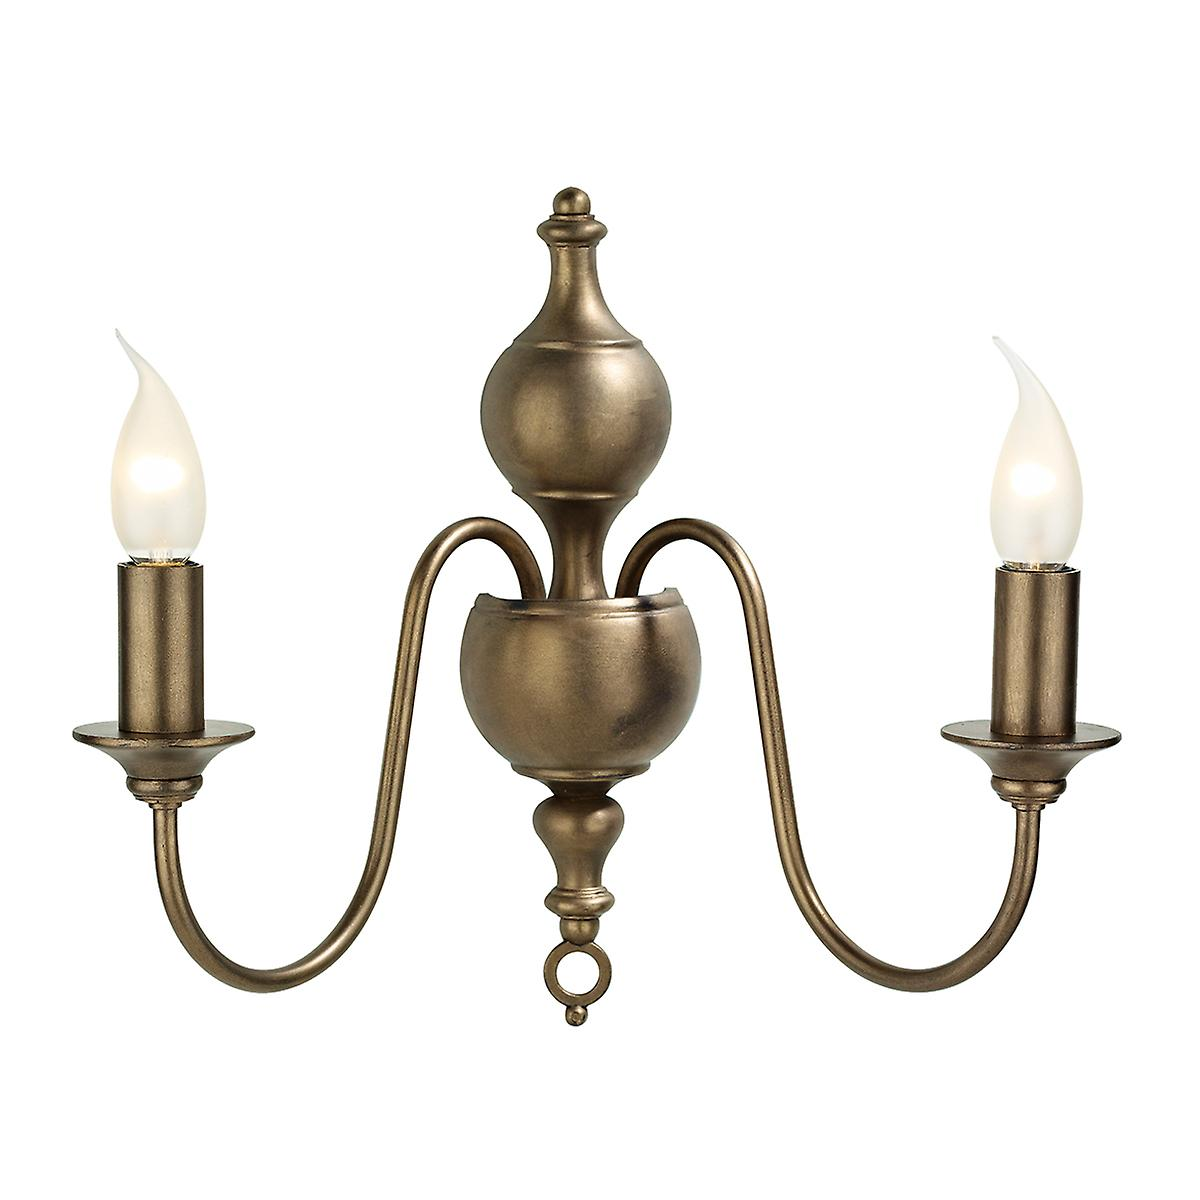 David Hunt FLE0963 Flemish Double Wall Bracket In A Bronze Finish